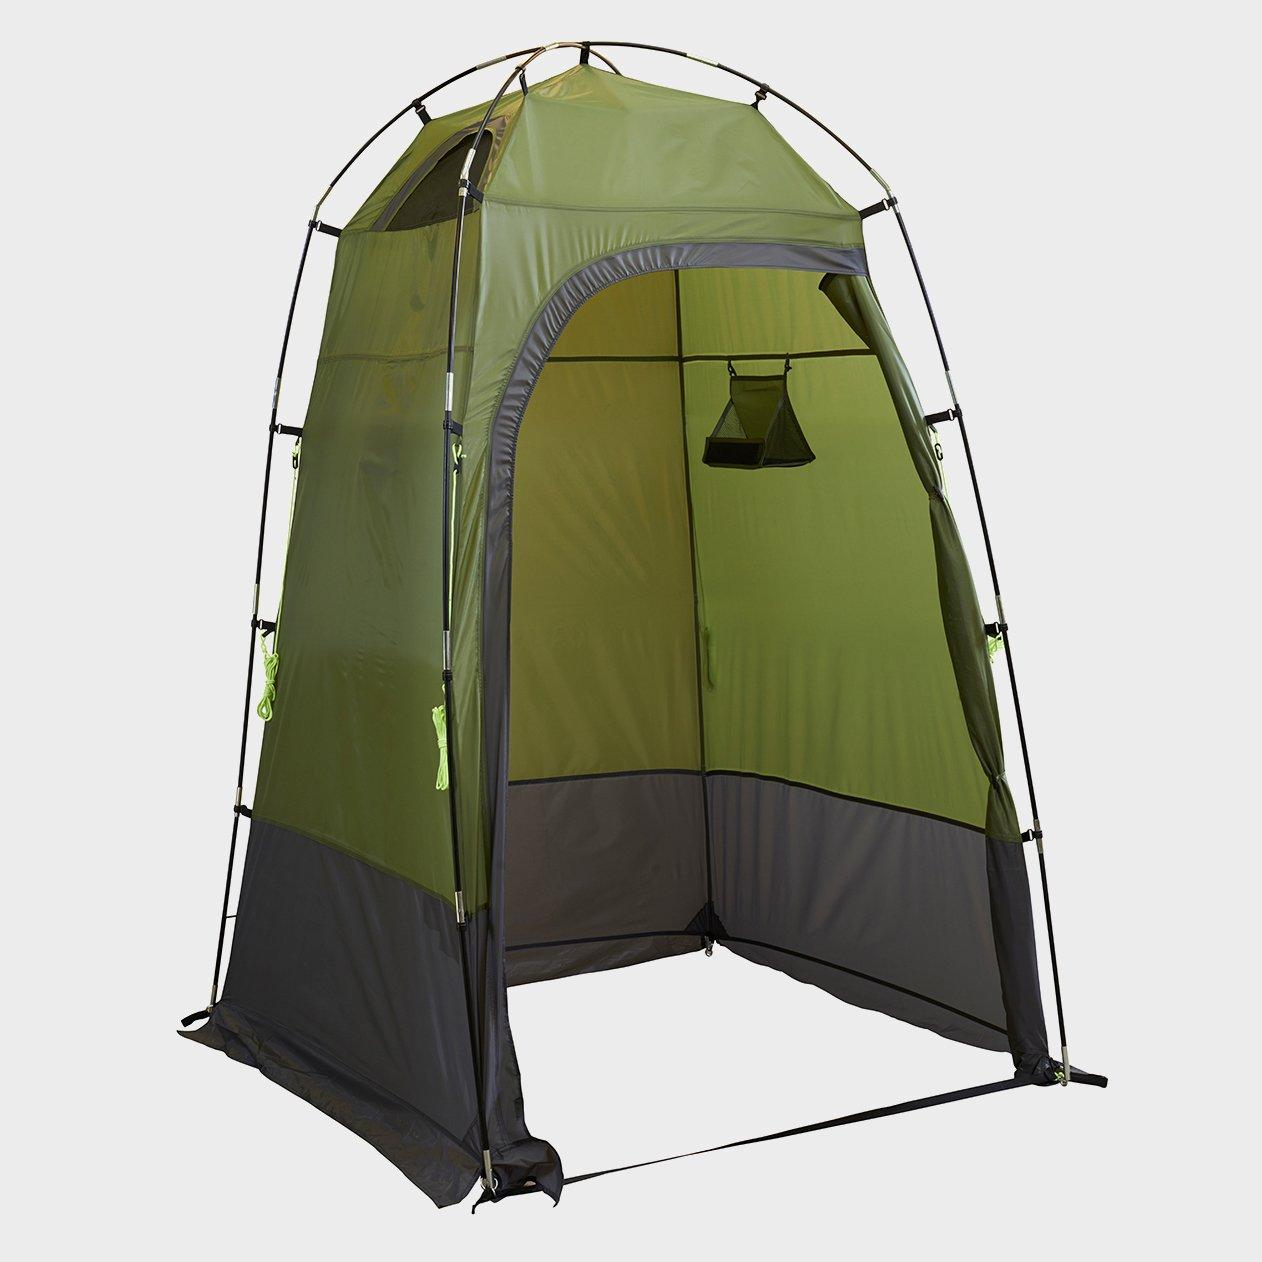 Tent Portable Shelter : Eurohike annexe tent green for £ £̵ ̵